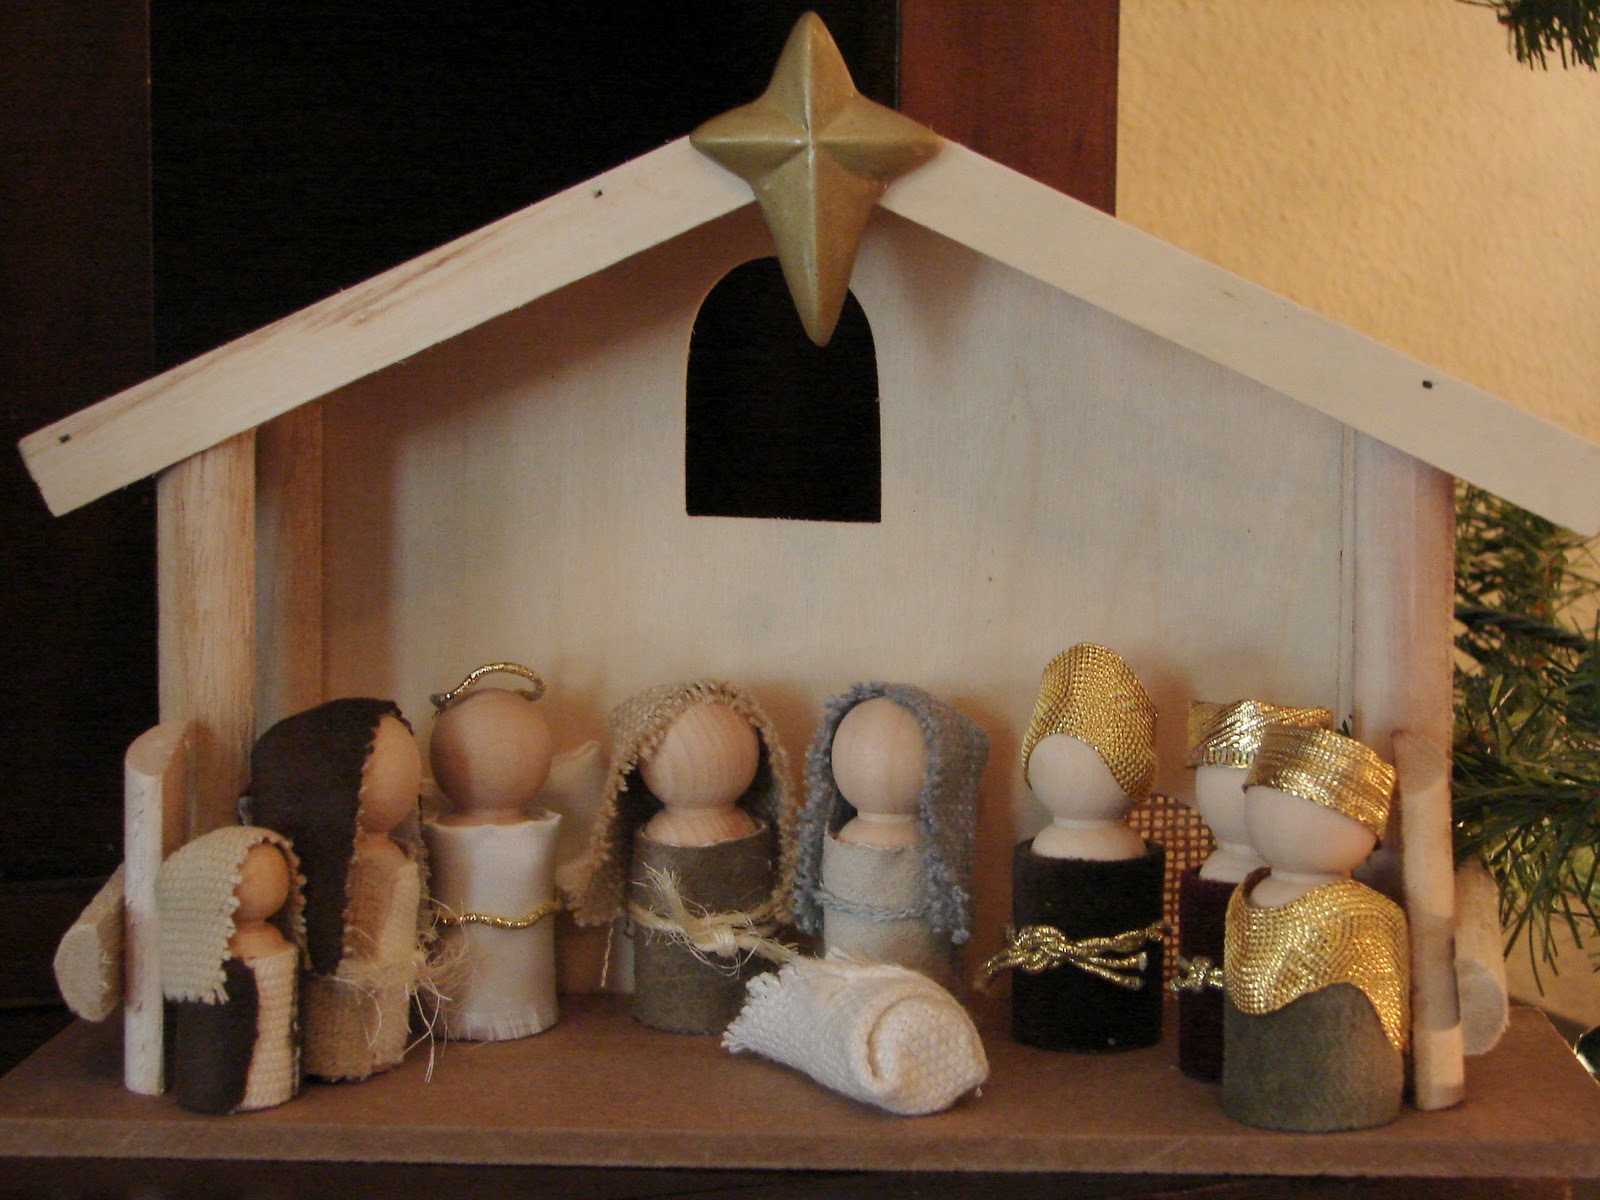 Little inspirations wooden doll nativity wednesday november 30 2011 solutioingenieria